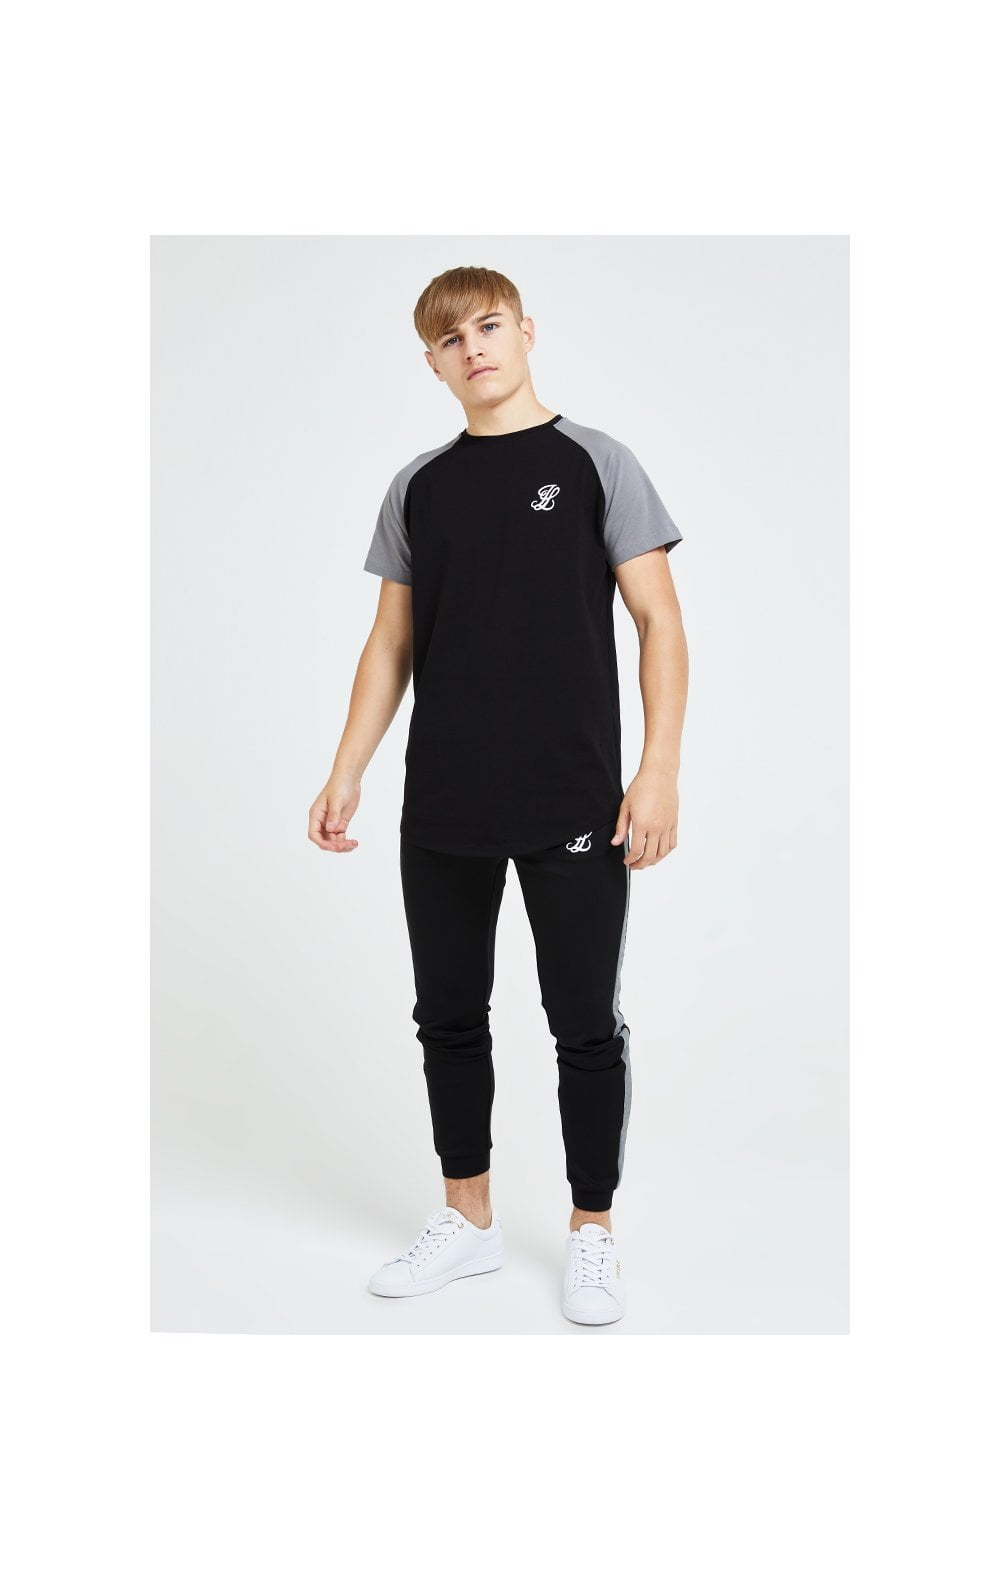 Illusive London Hybrid Joggers - Black & Grey (4)